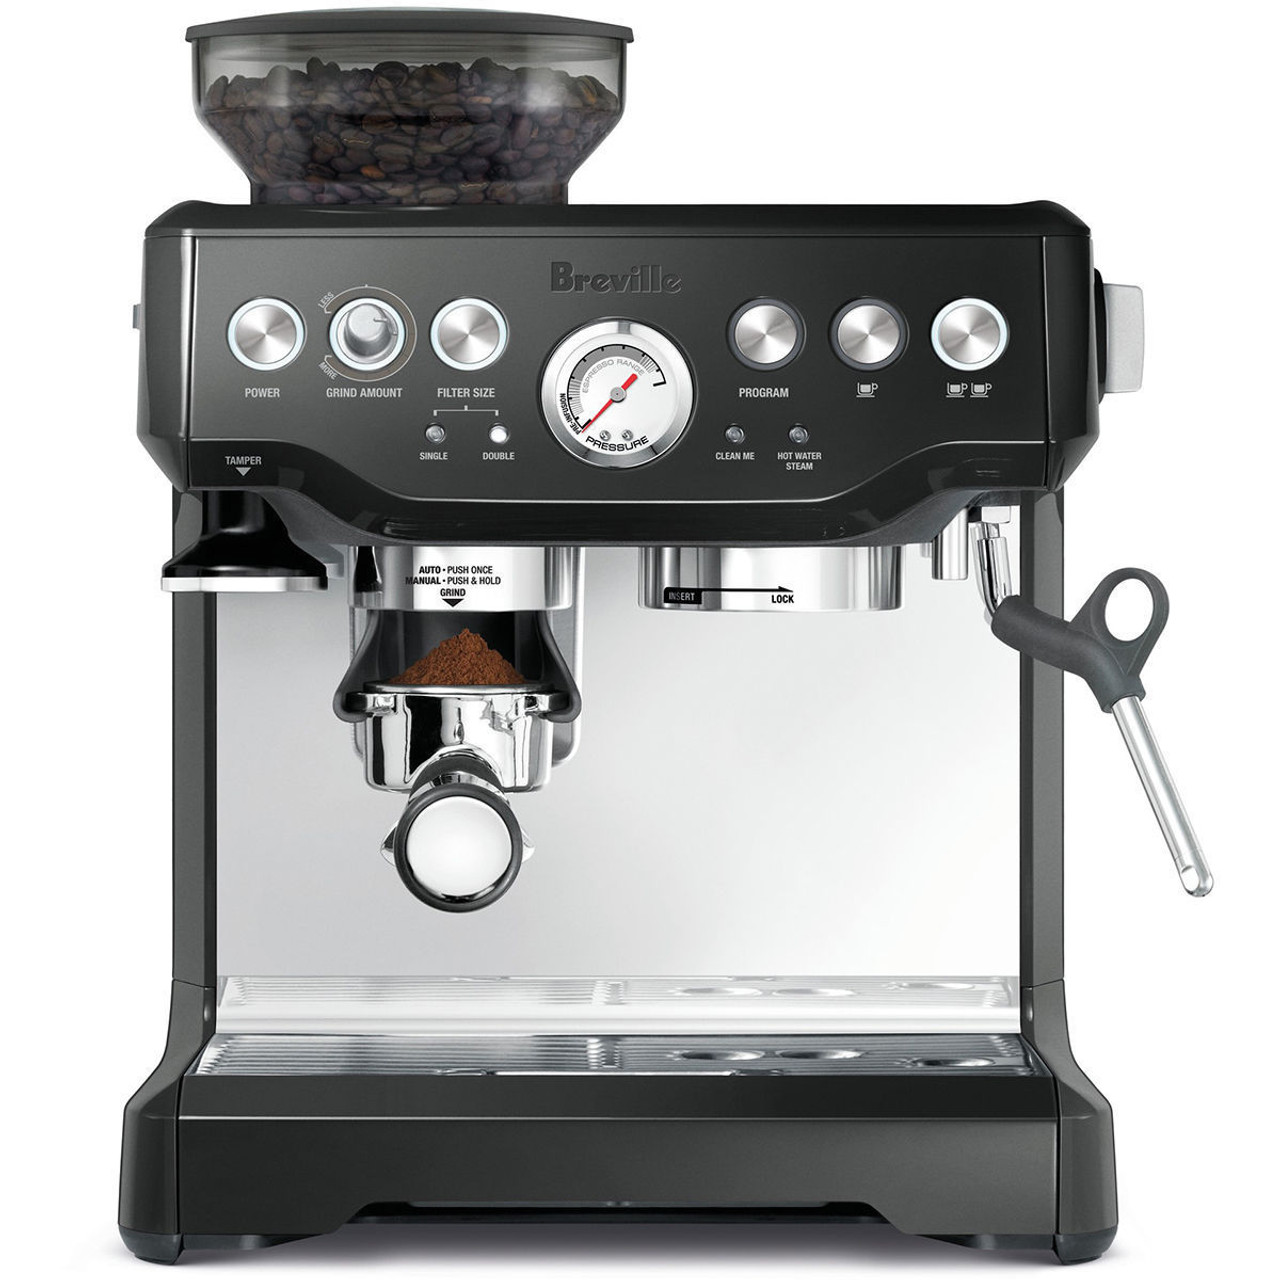 Breville BES870BKS the Barista Express™ Coffee Machine - Black - HURRY LAST 2!